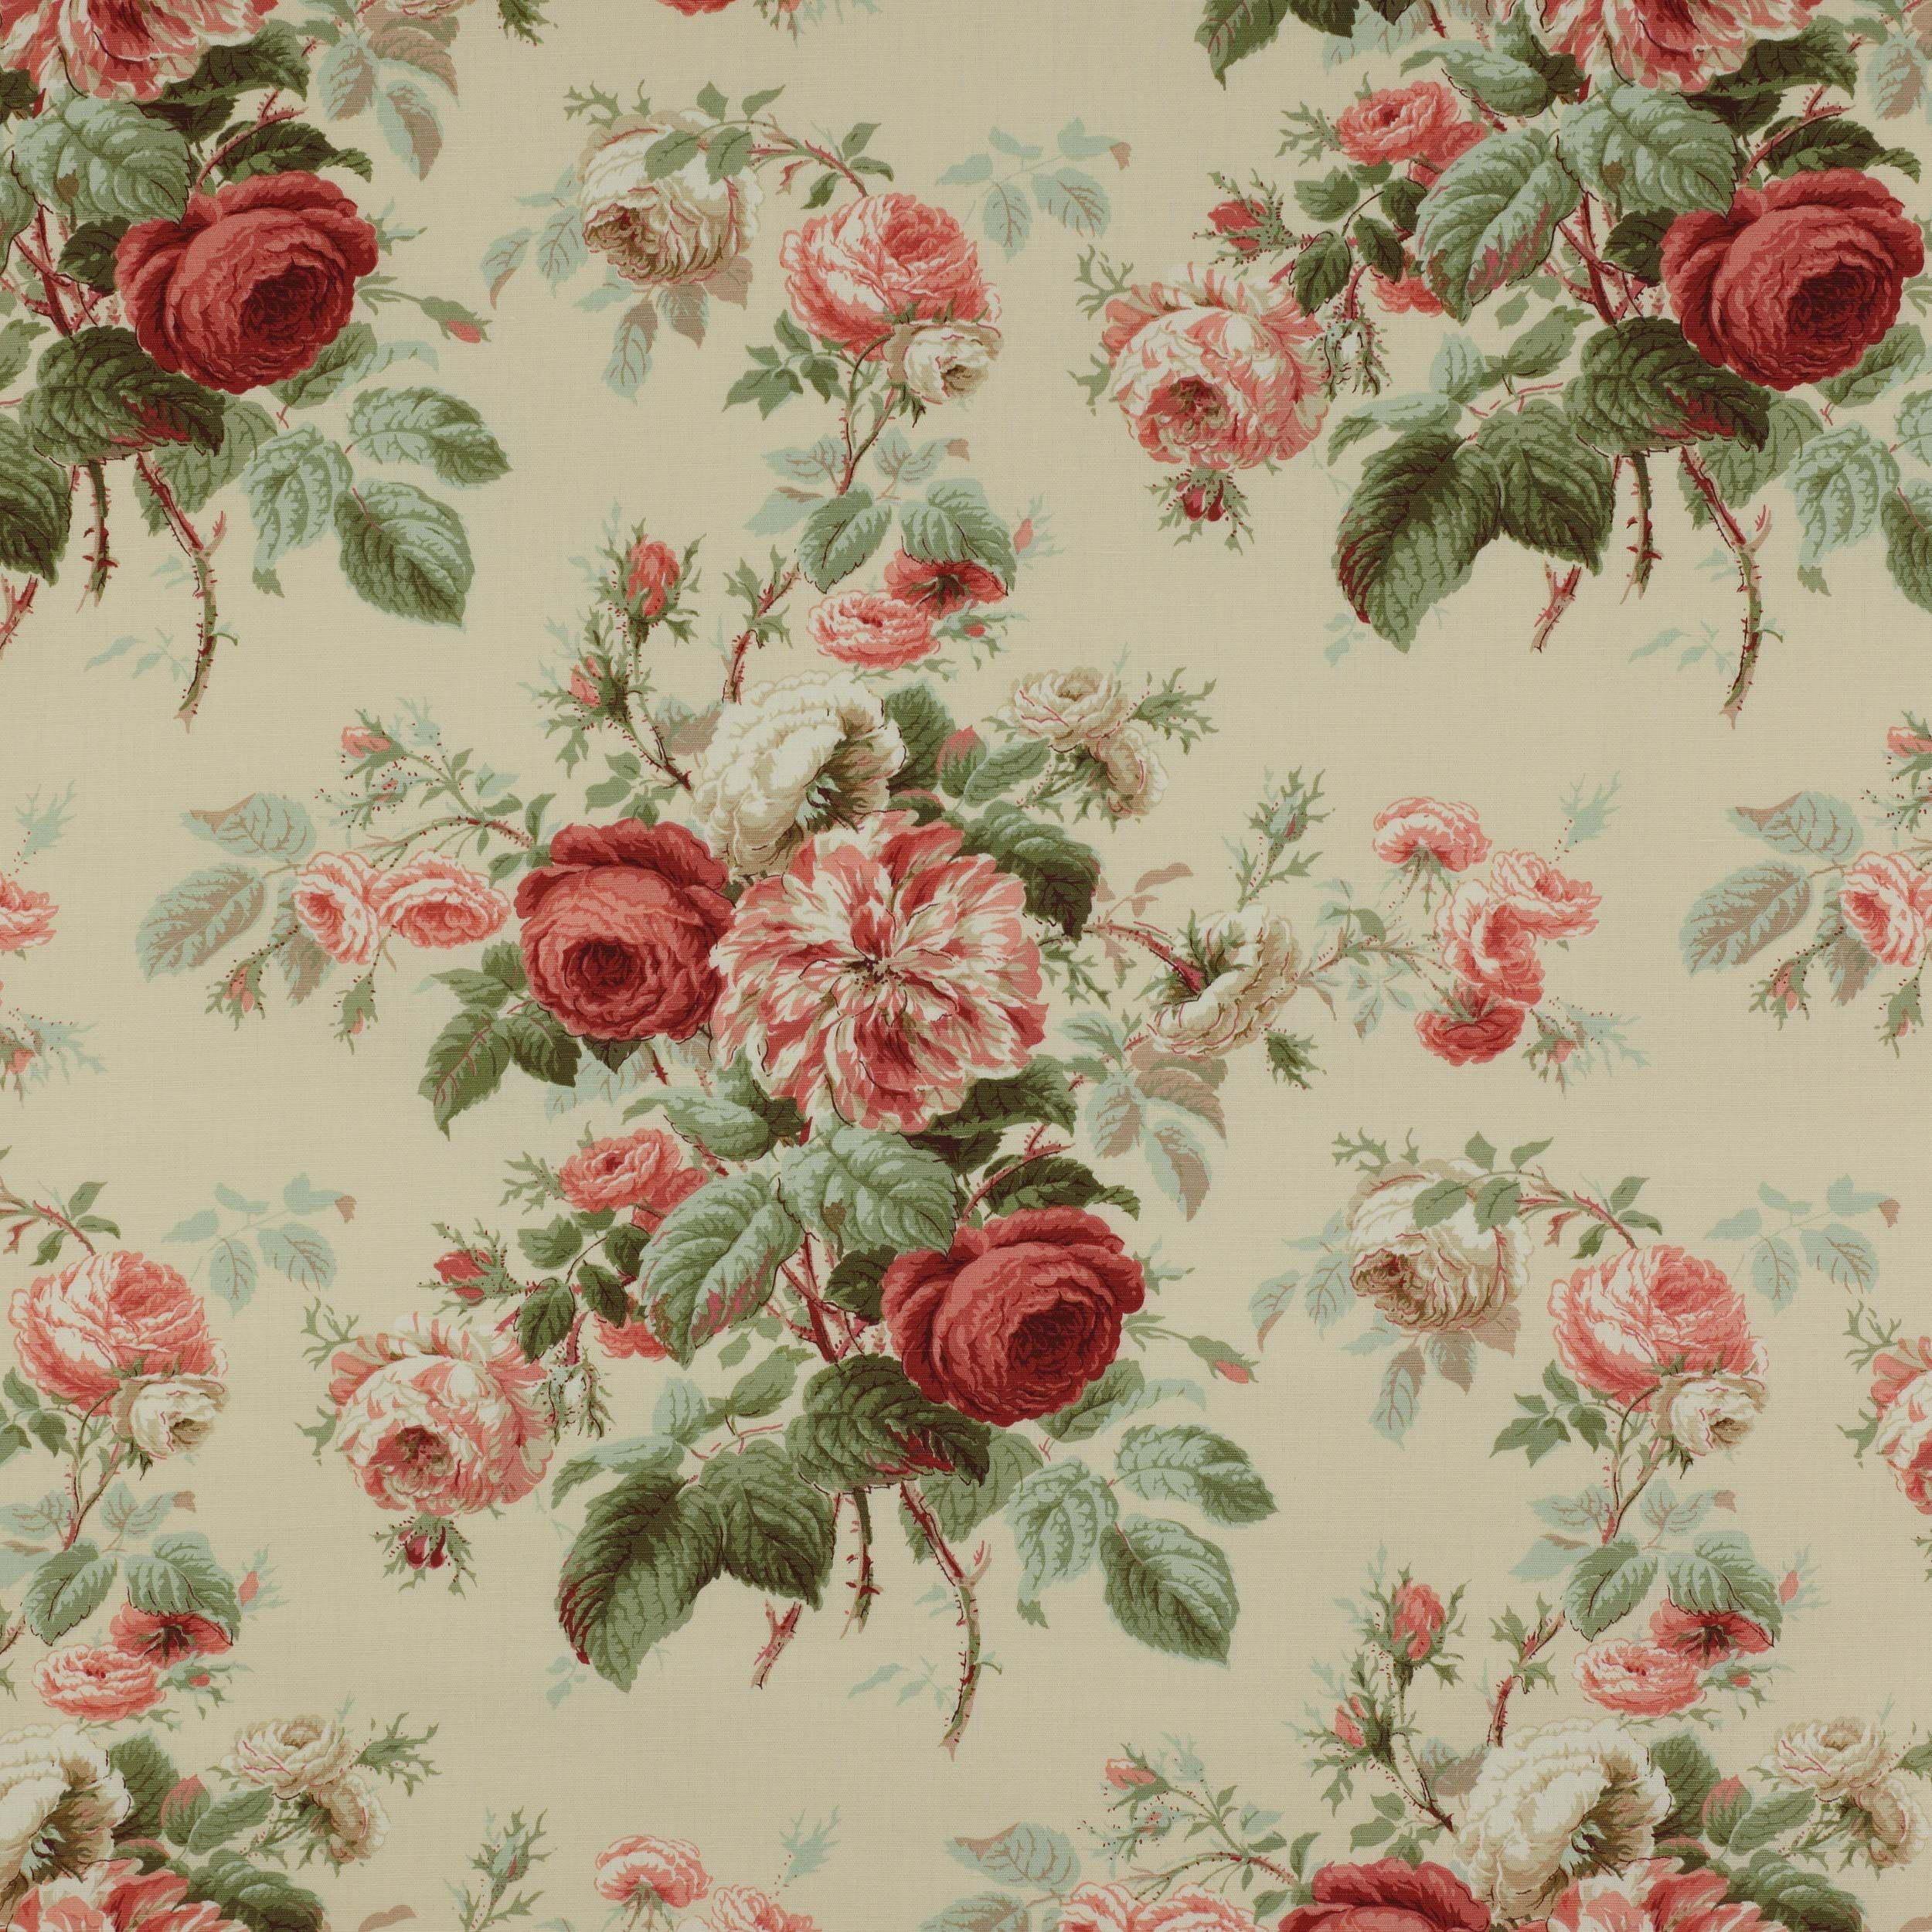 I've Always Loved This Colefax And Fowler Fabric